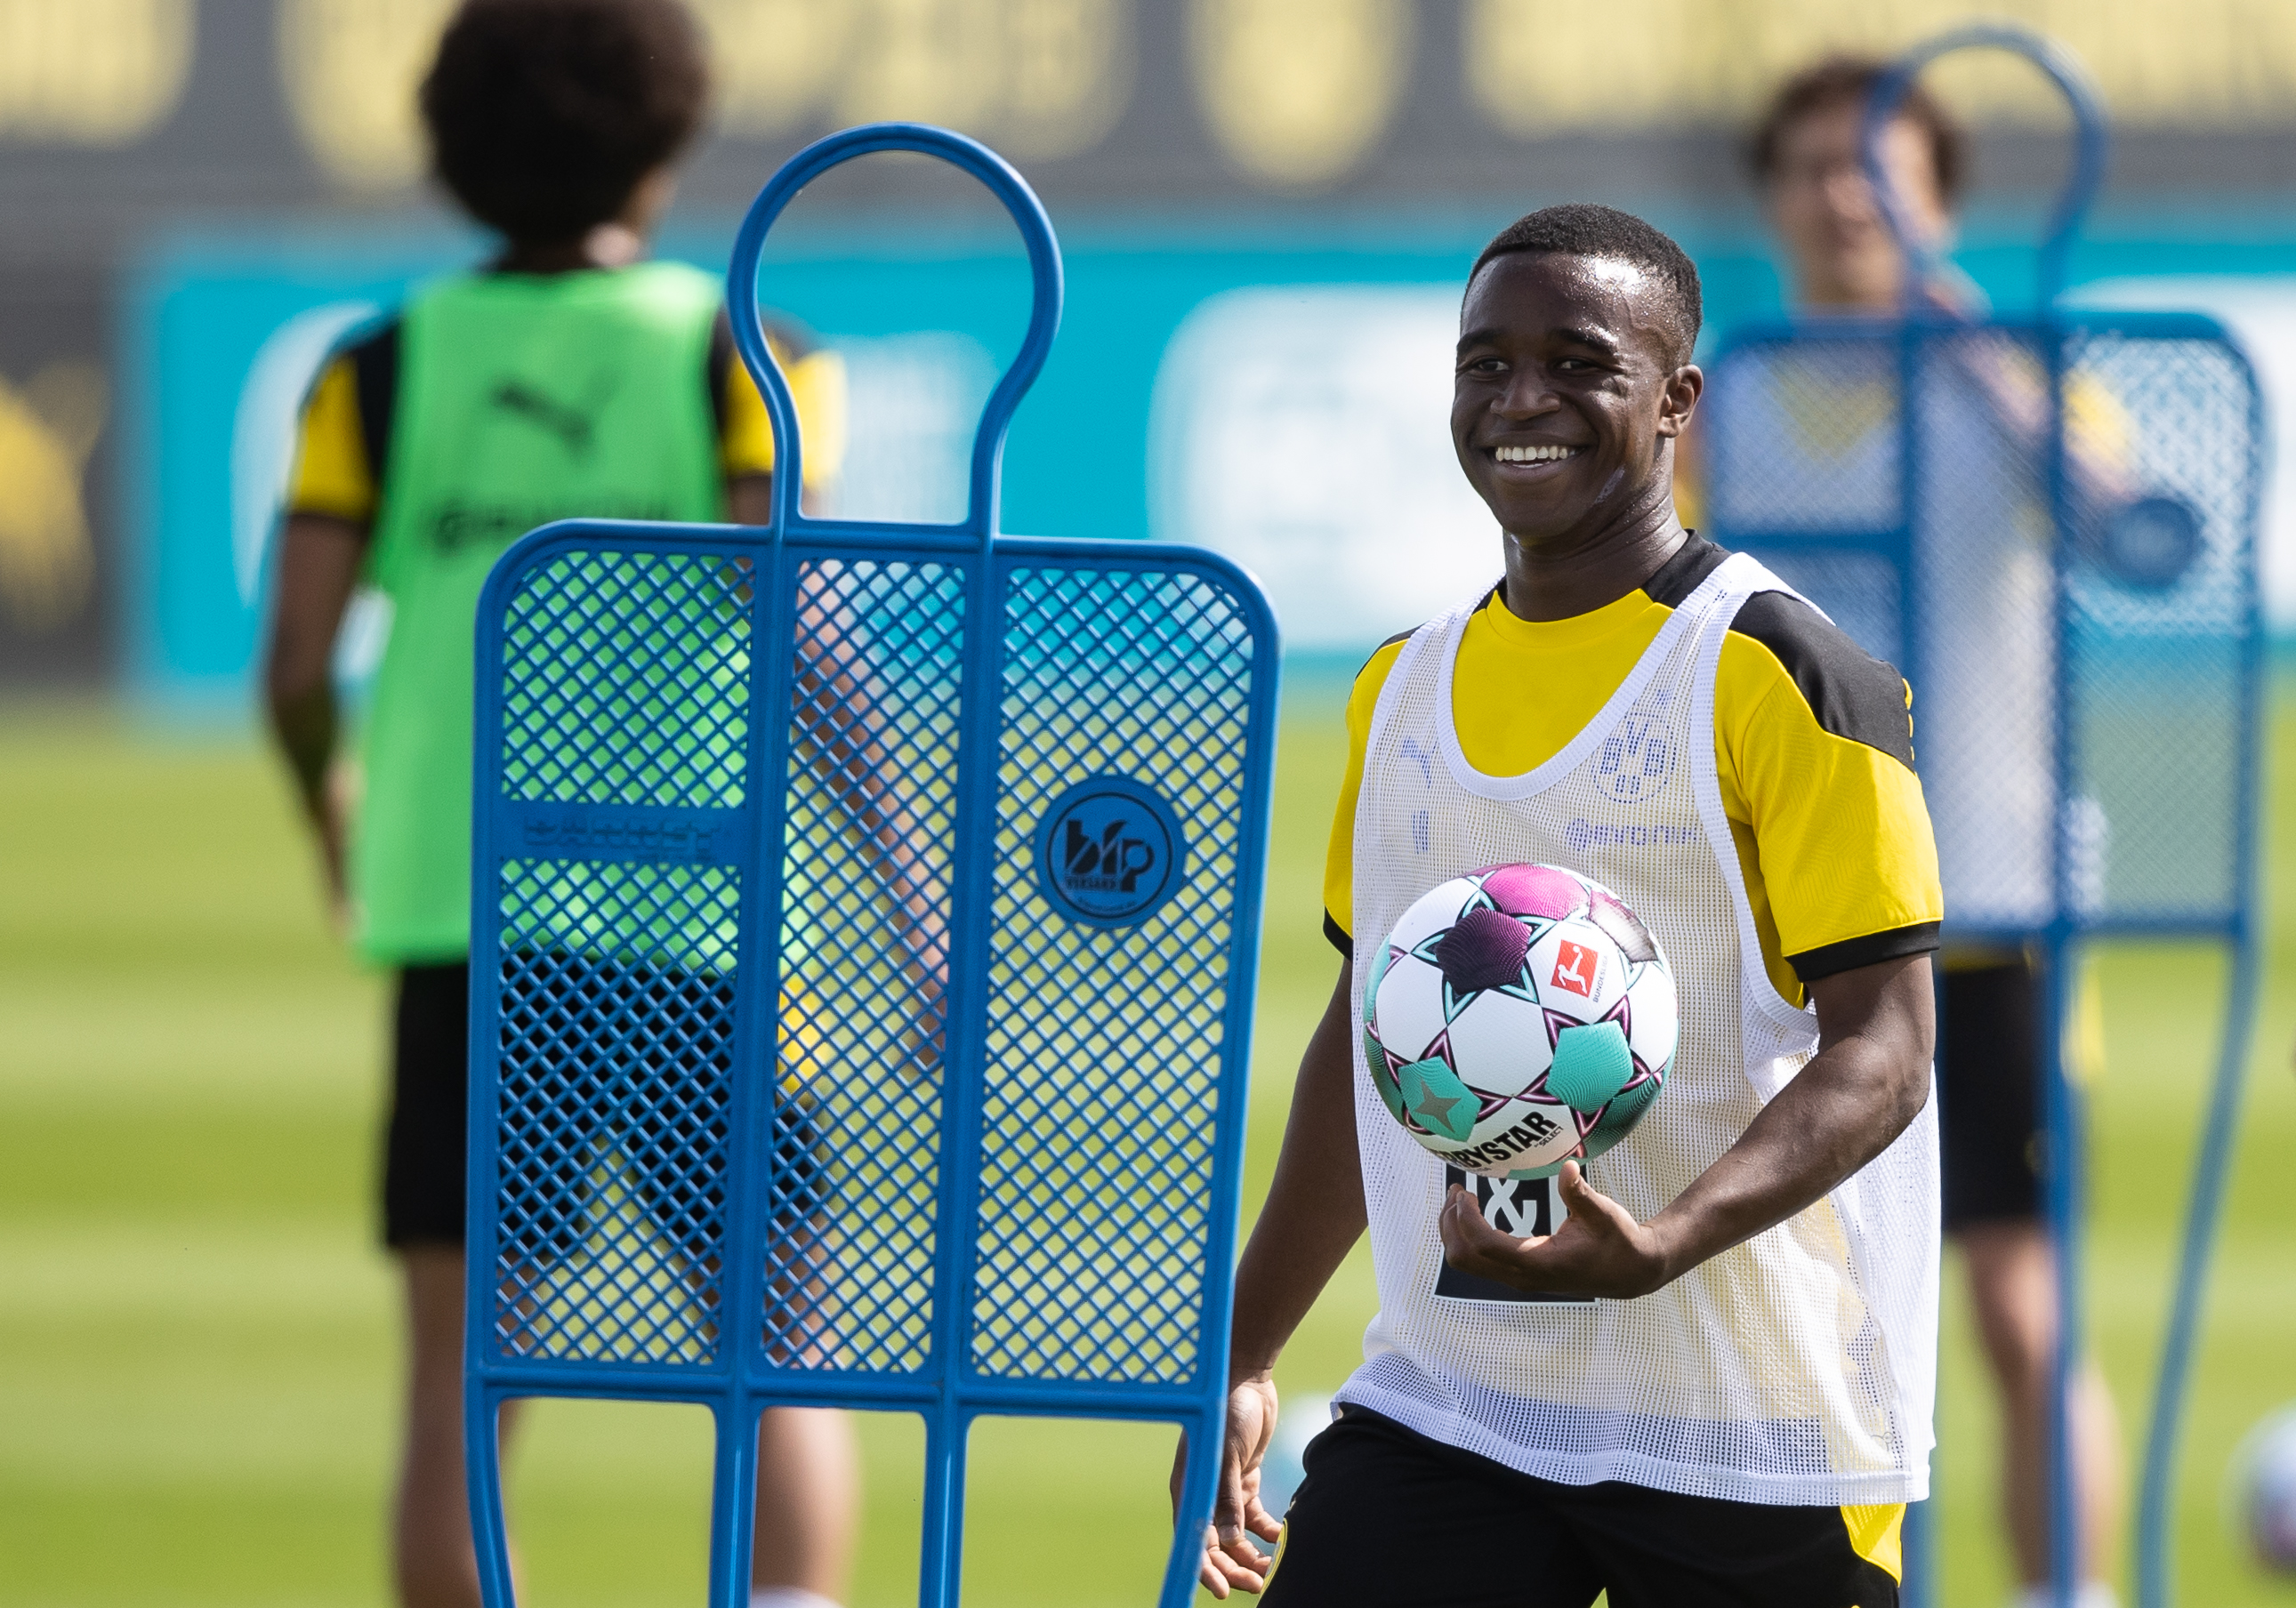 Borussia Dortmund teenager Youssoufa Moukoko could become youngest player in Bundesliga history